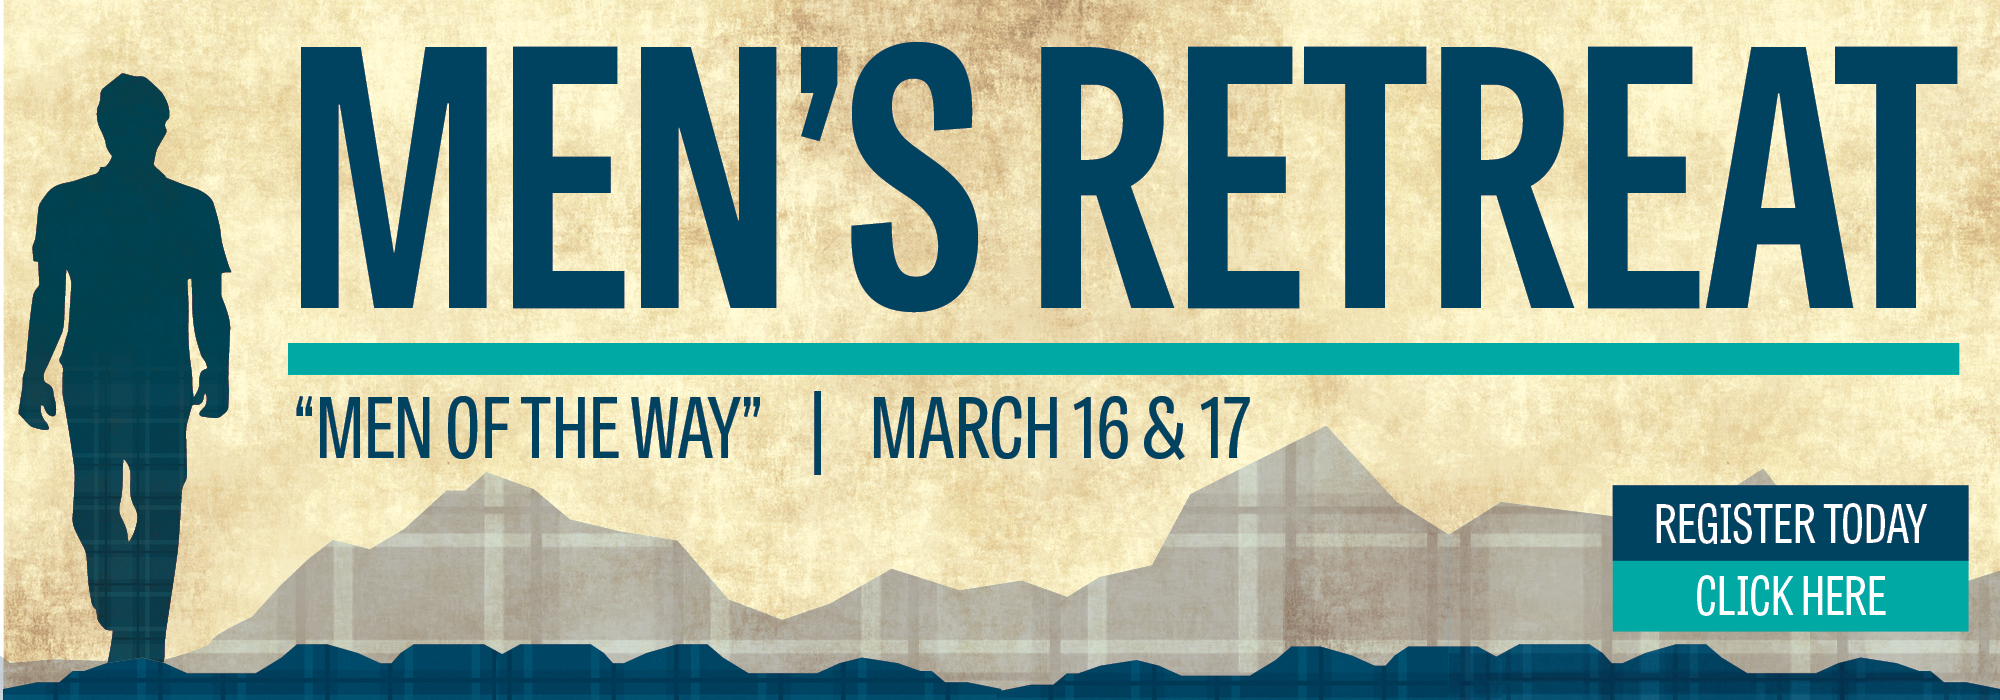 Mens-Retreat-2018-WebBanner